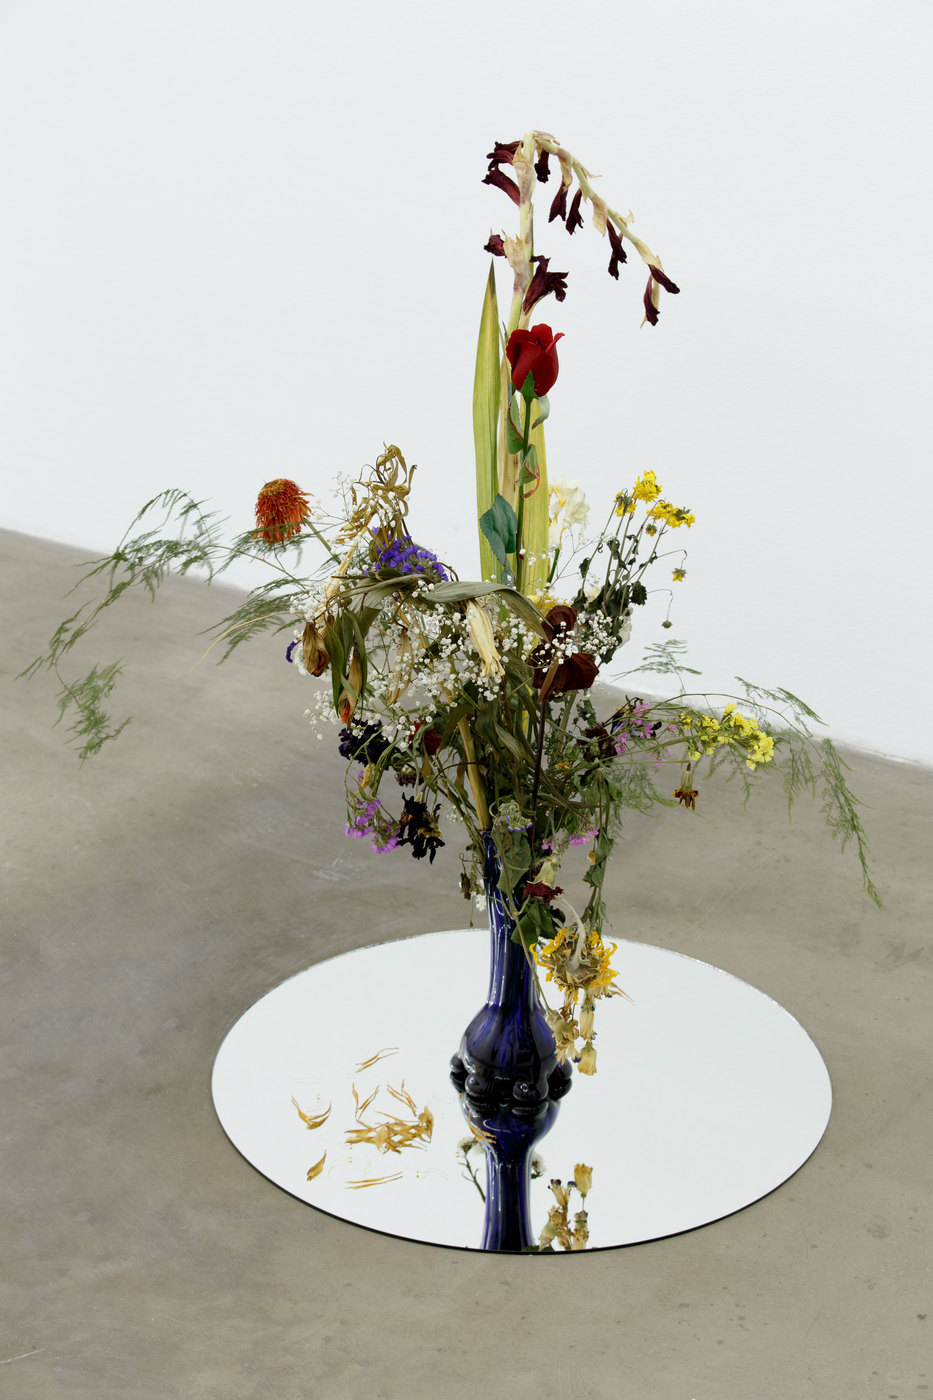 12a. Alice Tomaselli, Bouquet of 54 natural flowers + 1 artificial, 2012_2016